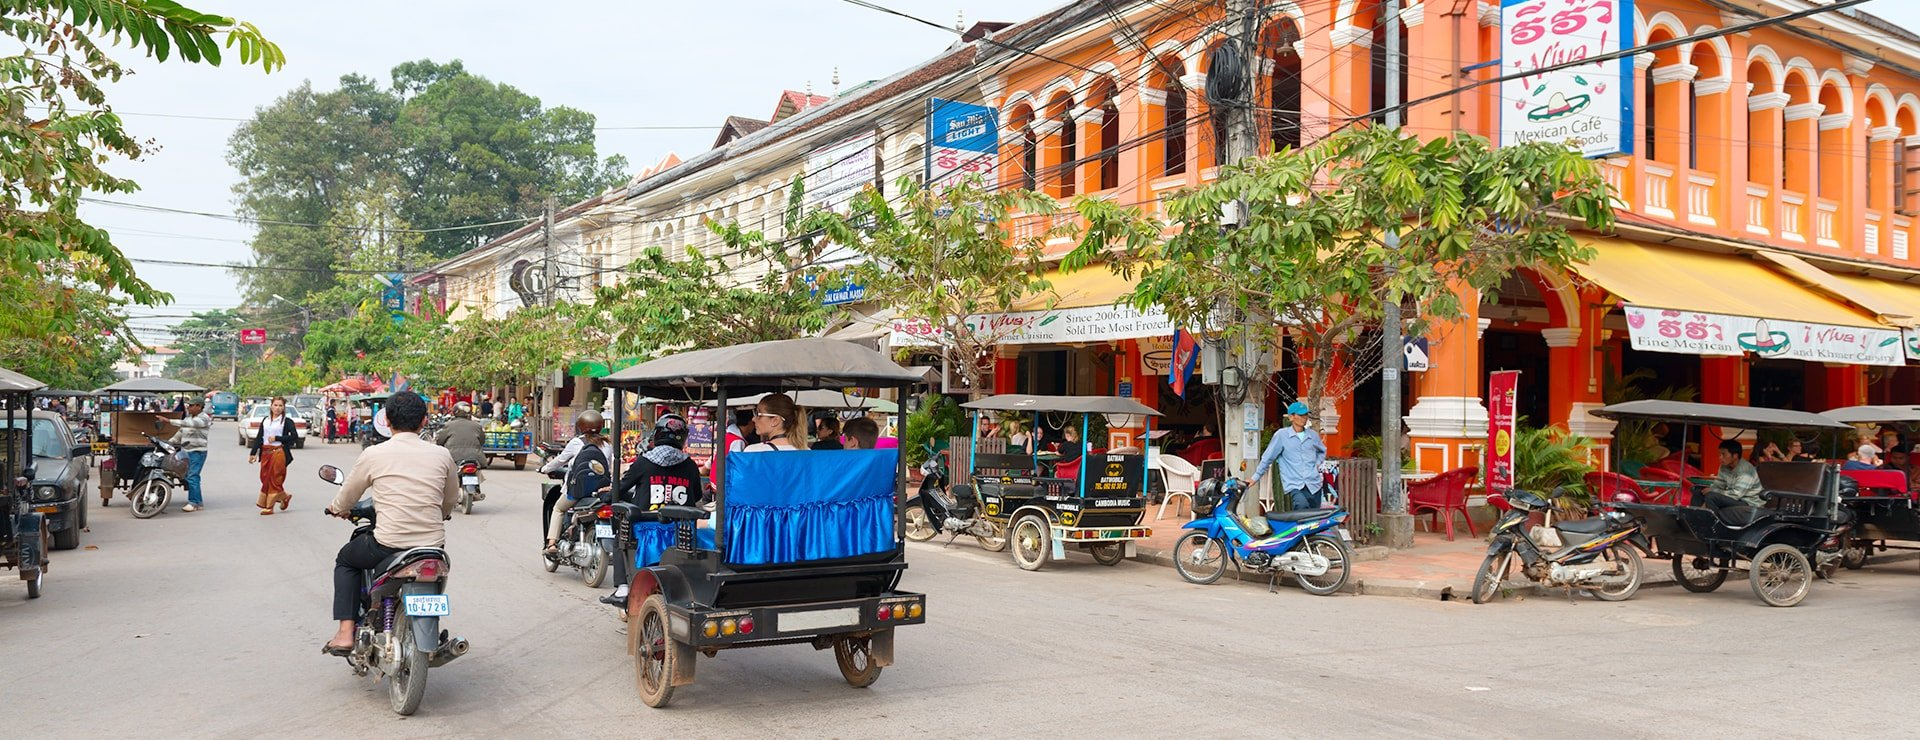 Colonial buildings in Siem Reap, Cambodia